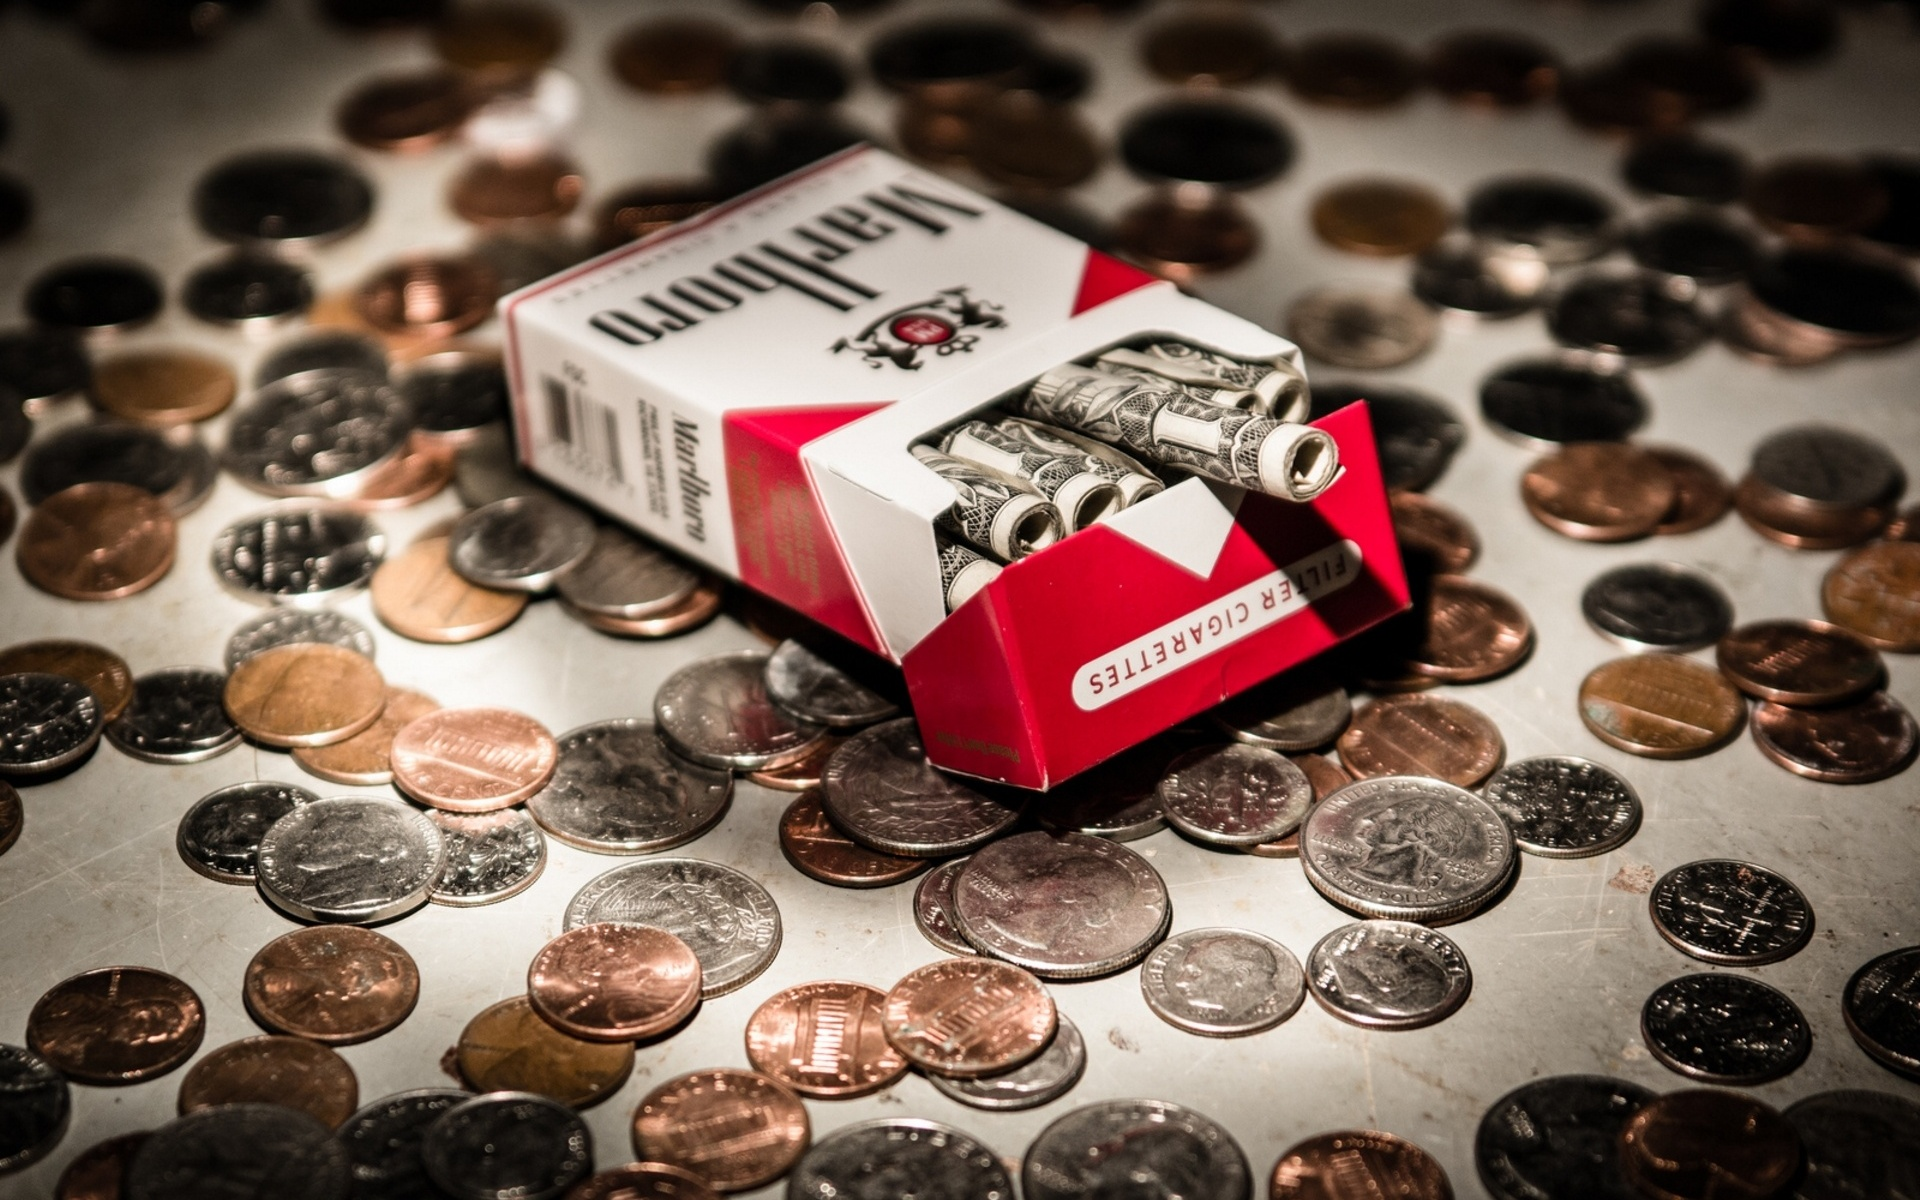 Marlboro Cigarette Wallpaper Hd Money Full Hd Wallpaper And Background Image 1920x1200